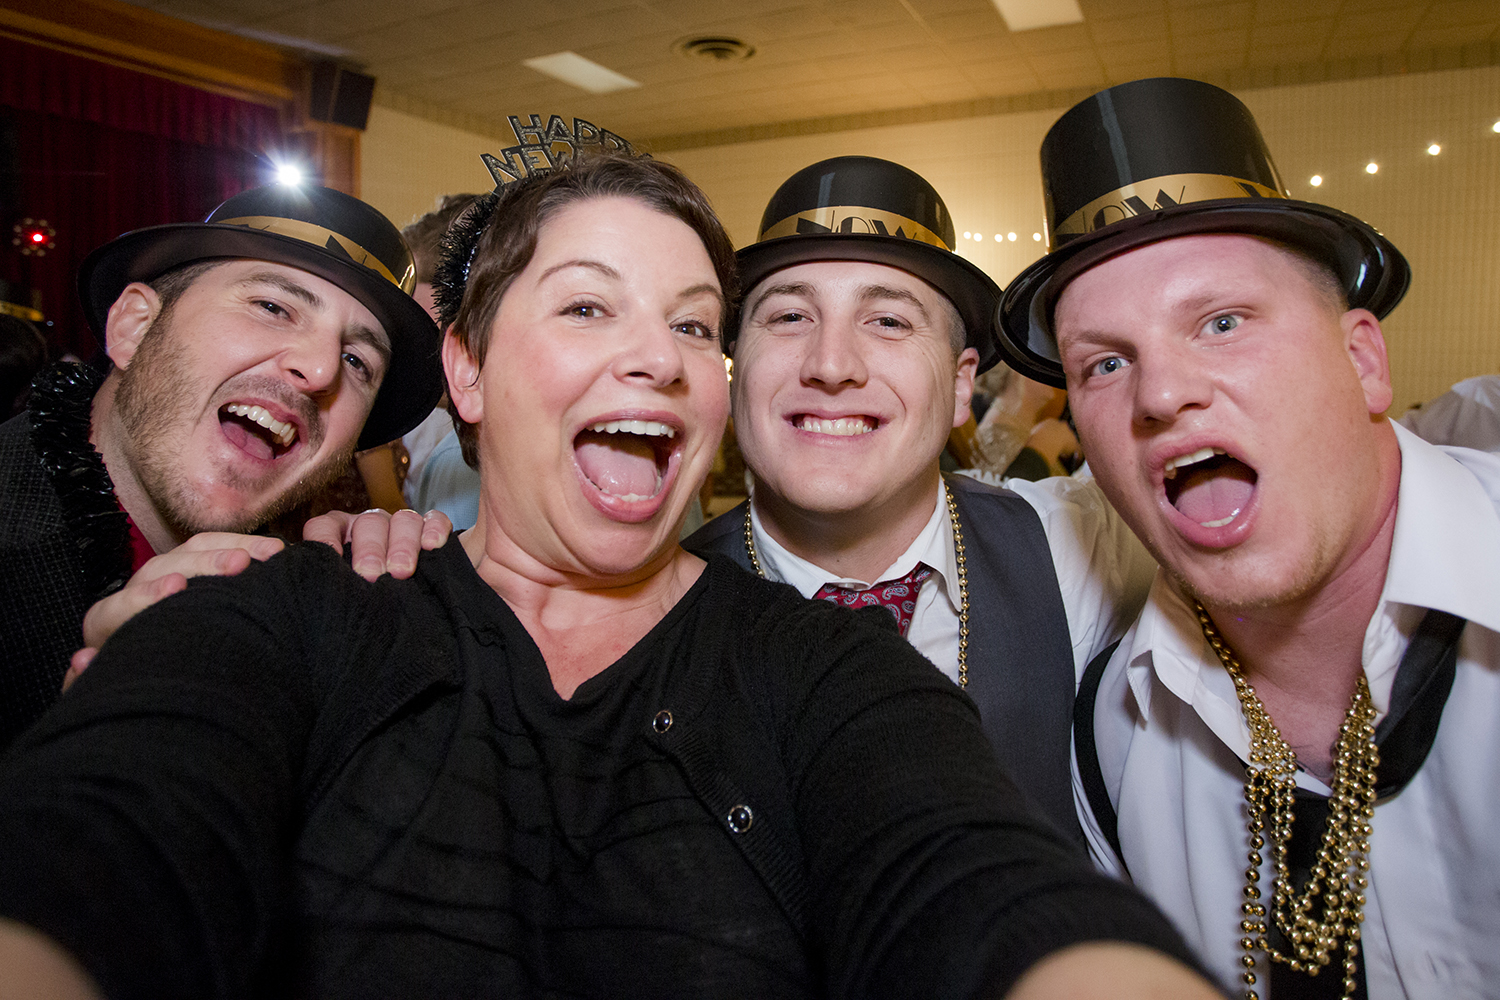 That's me, second from left, celebrating a New Year's Eve wedding with Leslie & Jonathan. And it's a real selfie taken with a real camera. If you're not having fun with your photos, you're doing it wrong.